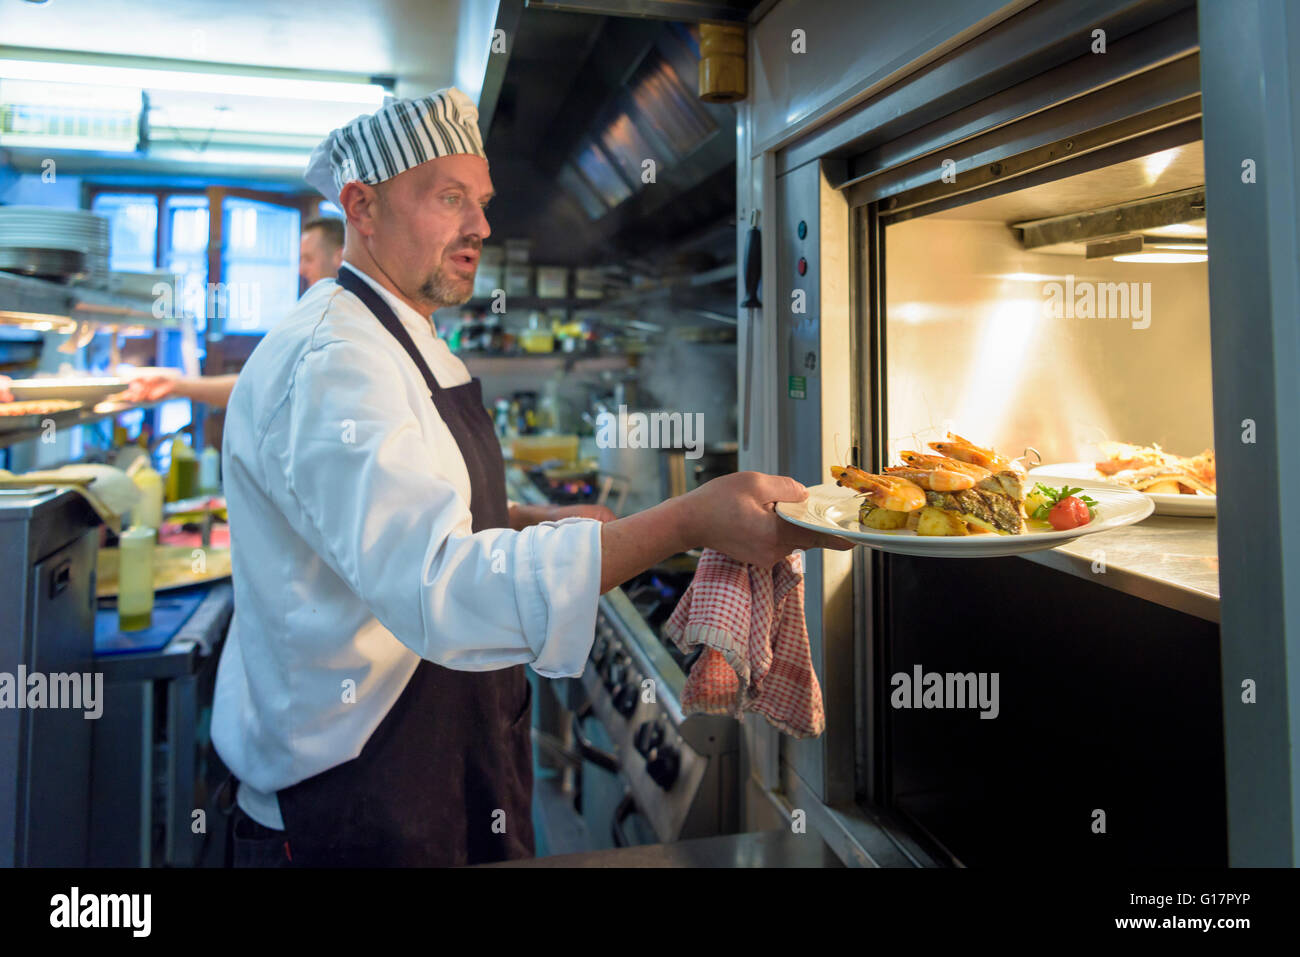 Chef placing dish in lift in traditional Italian restaurant kitchen - Stock Image